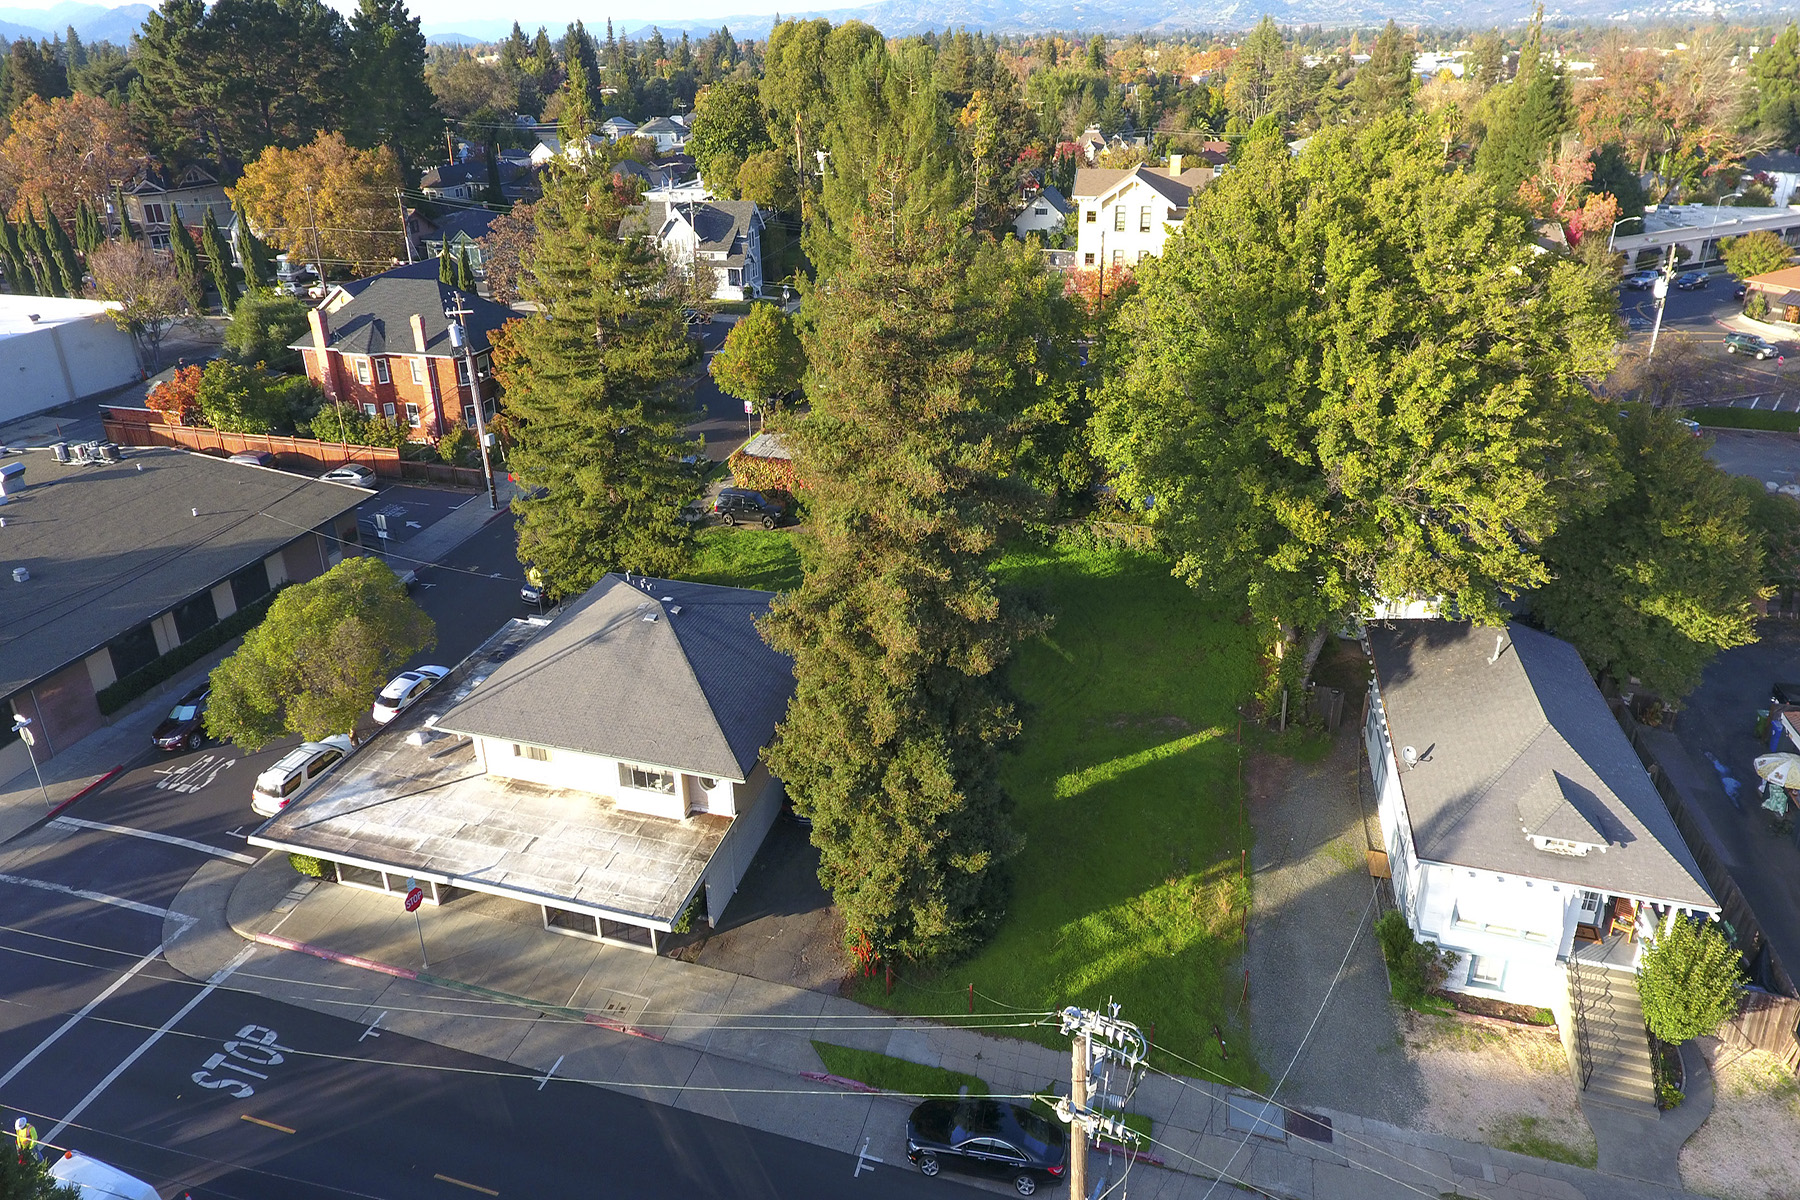 Other Residential for Sale at 1584 Clay, Napa, CA 94559 1584 Clay Napa, California 94559 United States